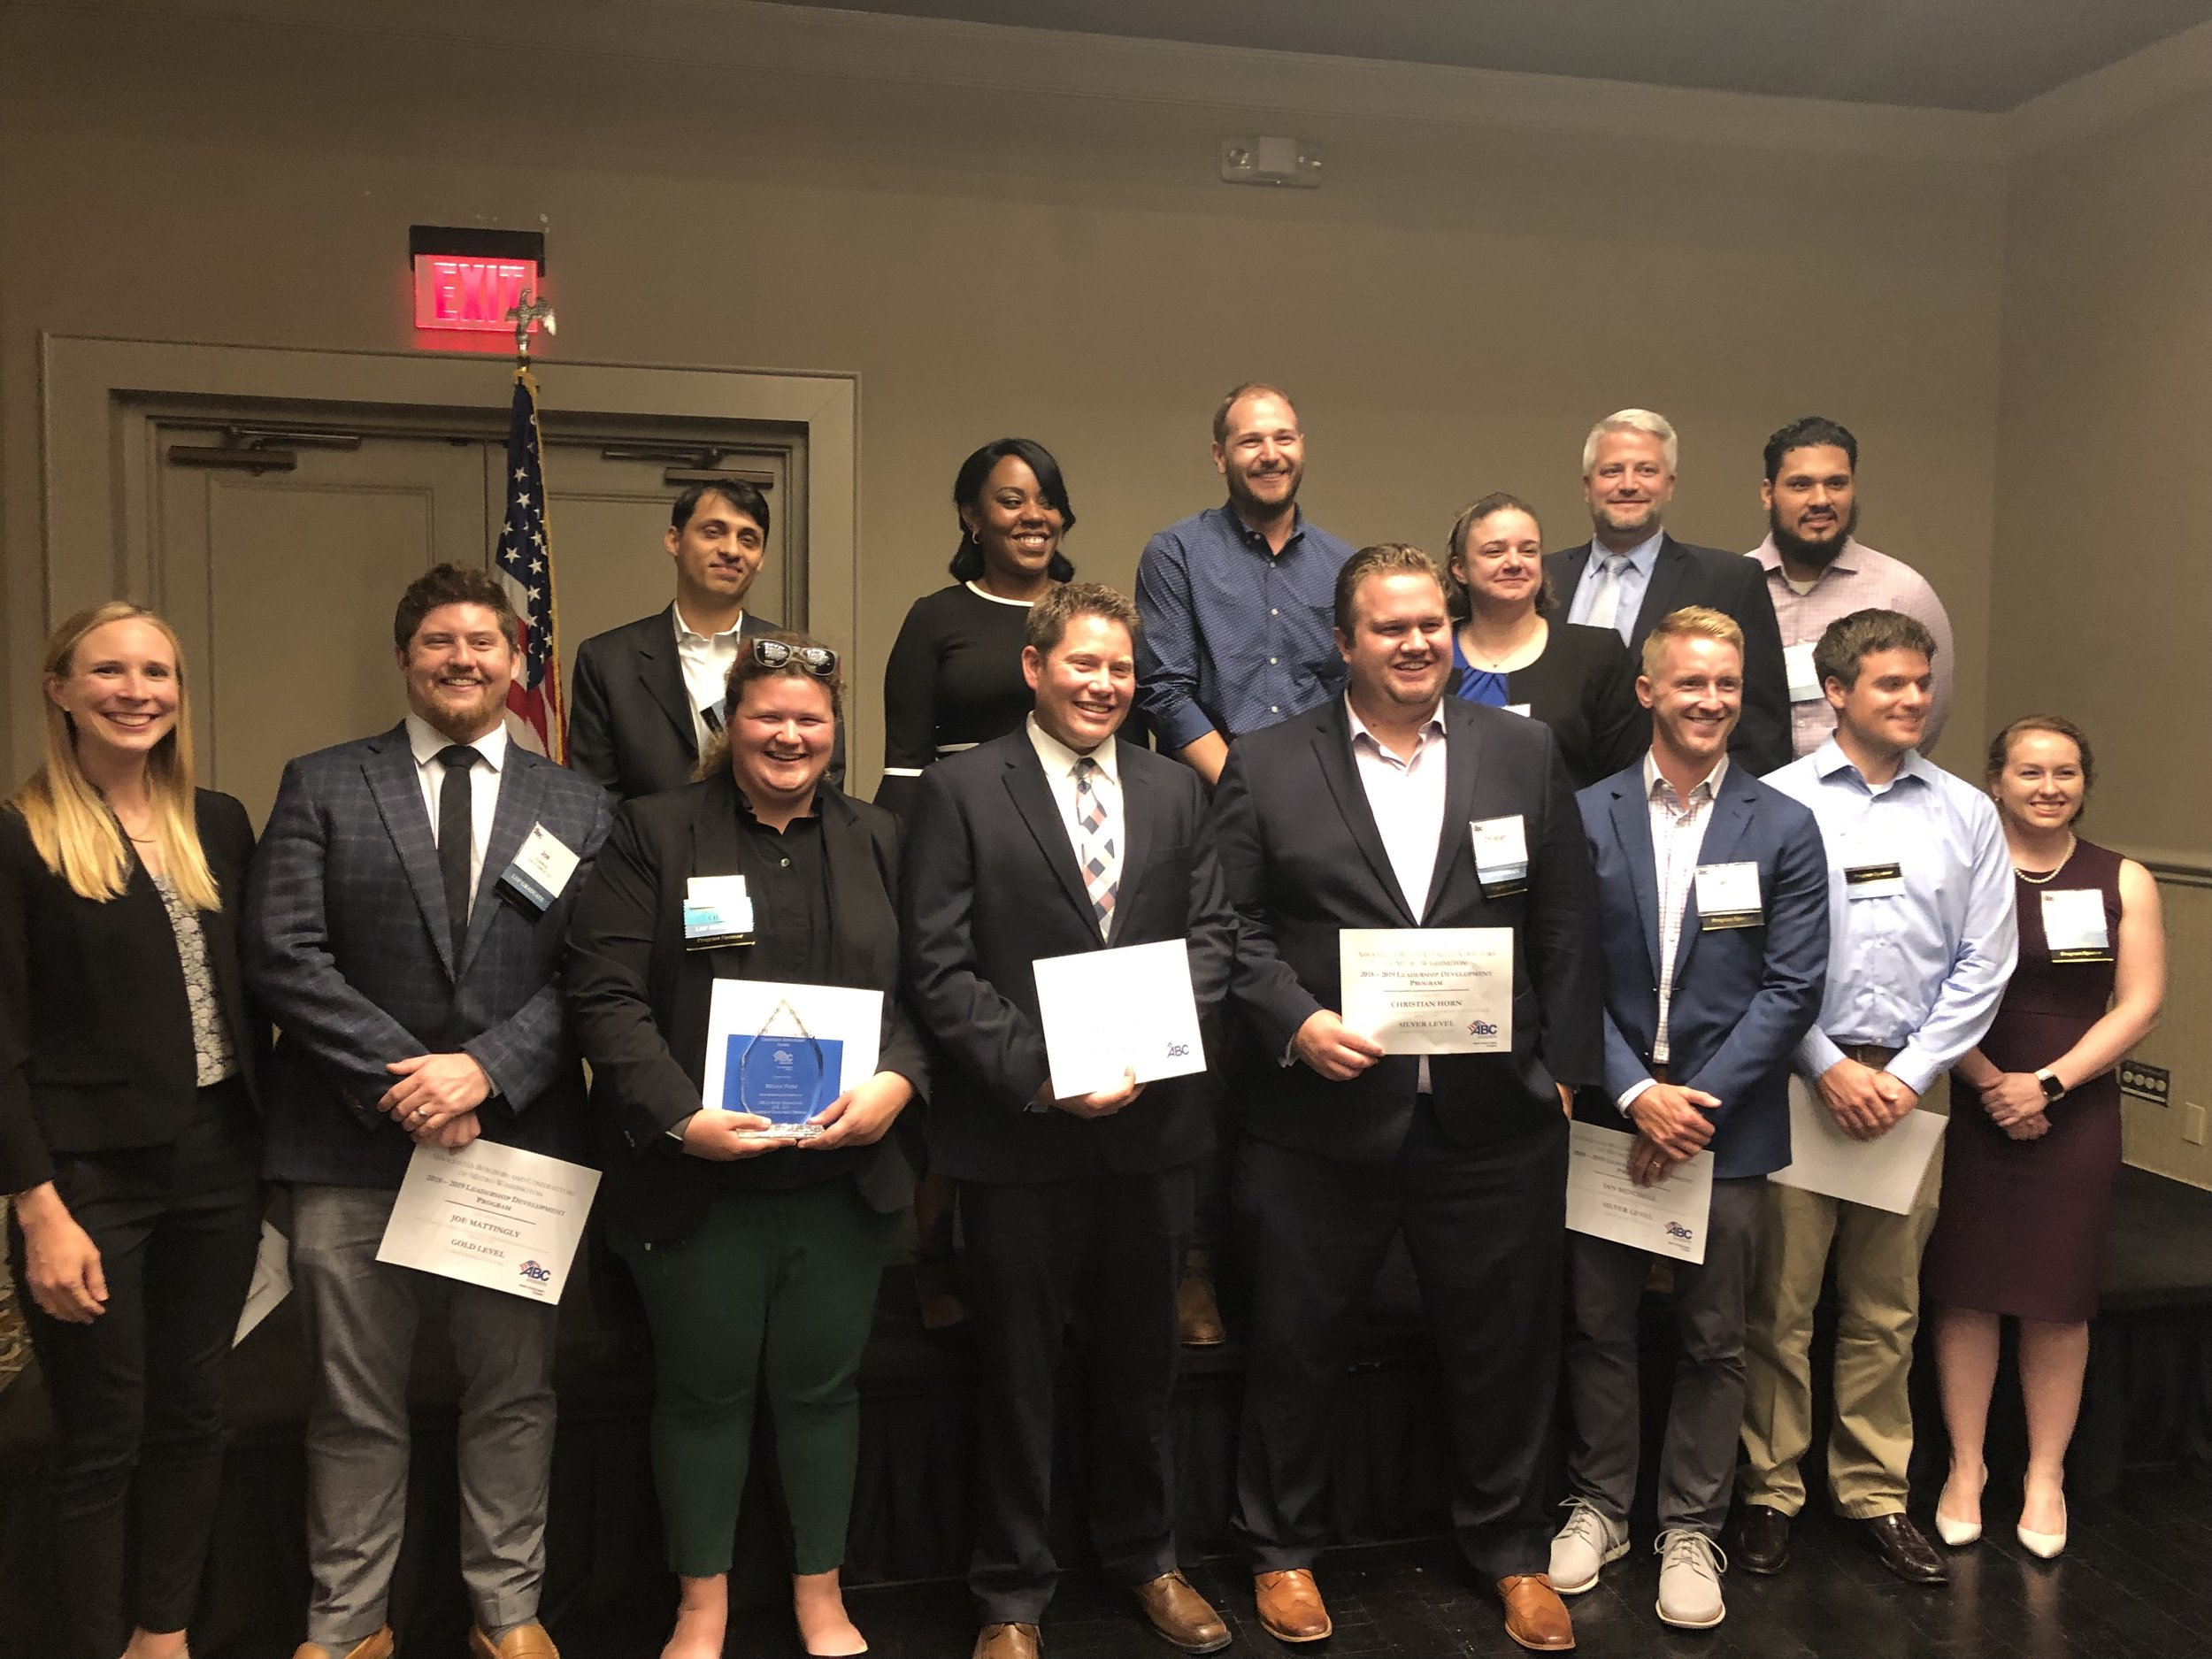 The 2019 ABC Leadership Development Program graduates show their certifications.